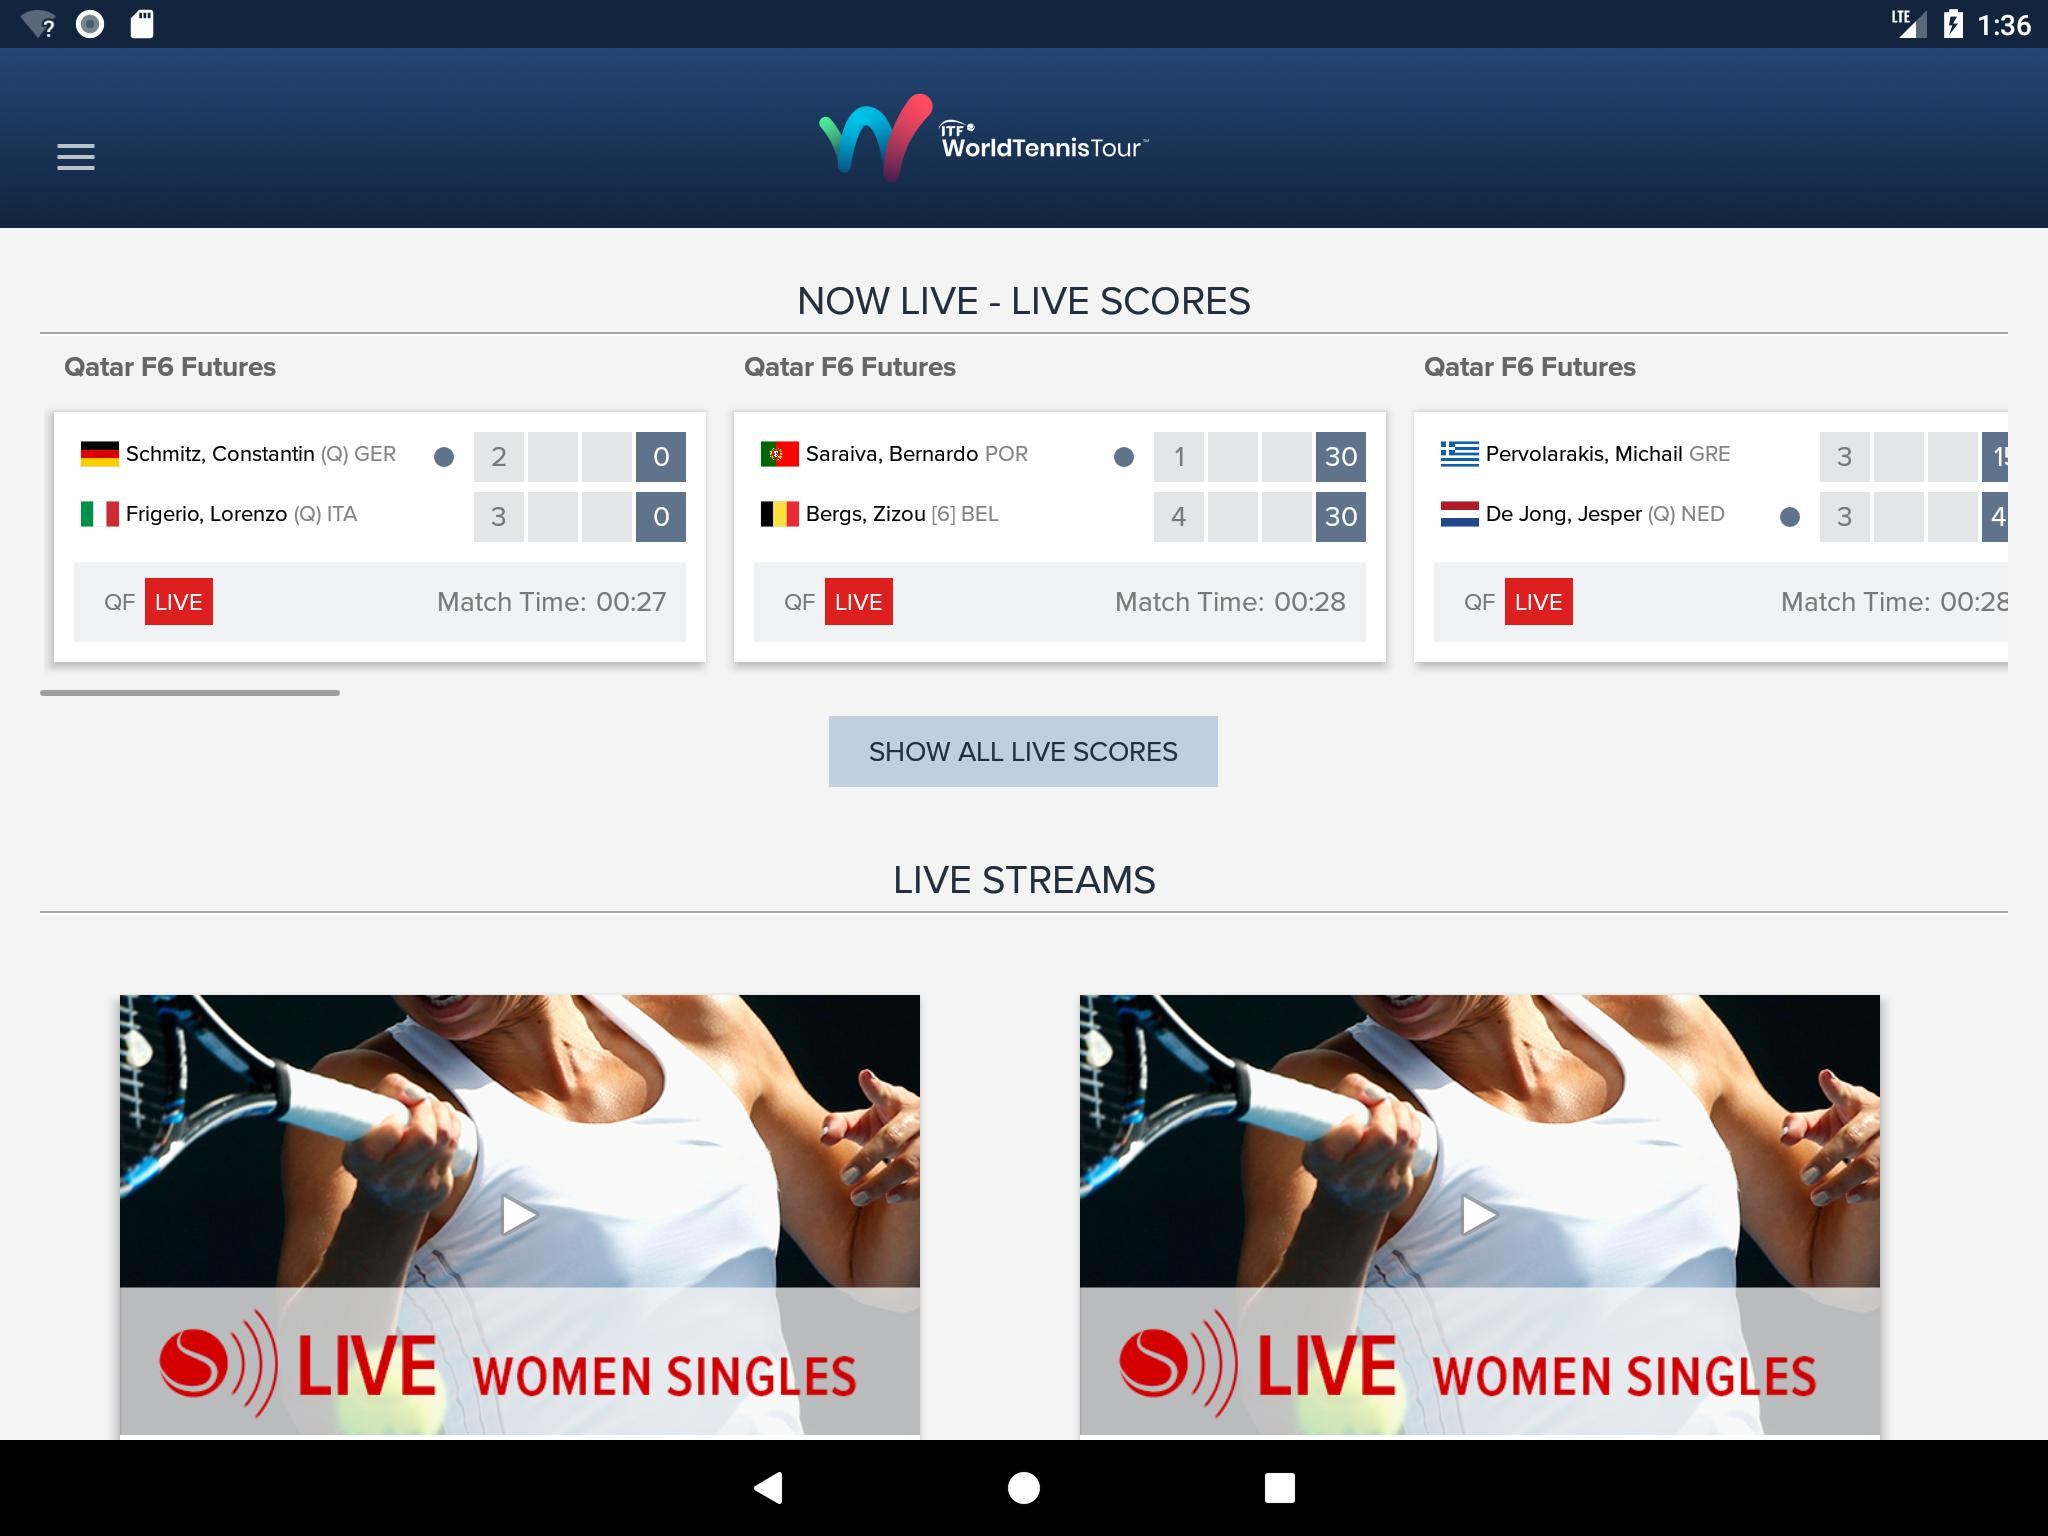 Try These Itf Men's Tennis Live Scores {Mahindra Racing}